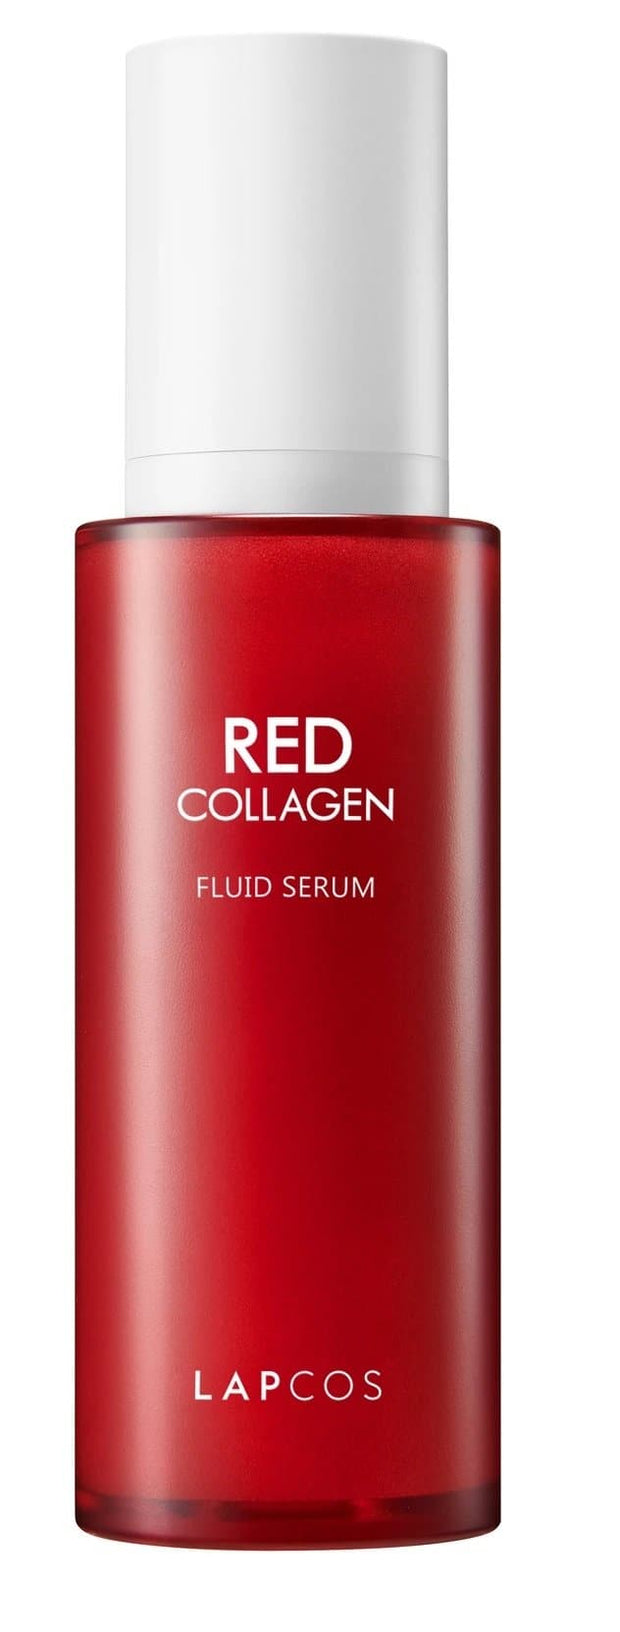 LAPCOS - Red Collagen Fluid Serum